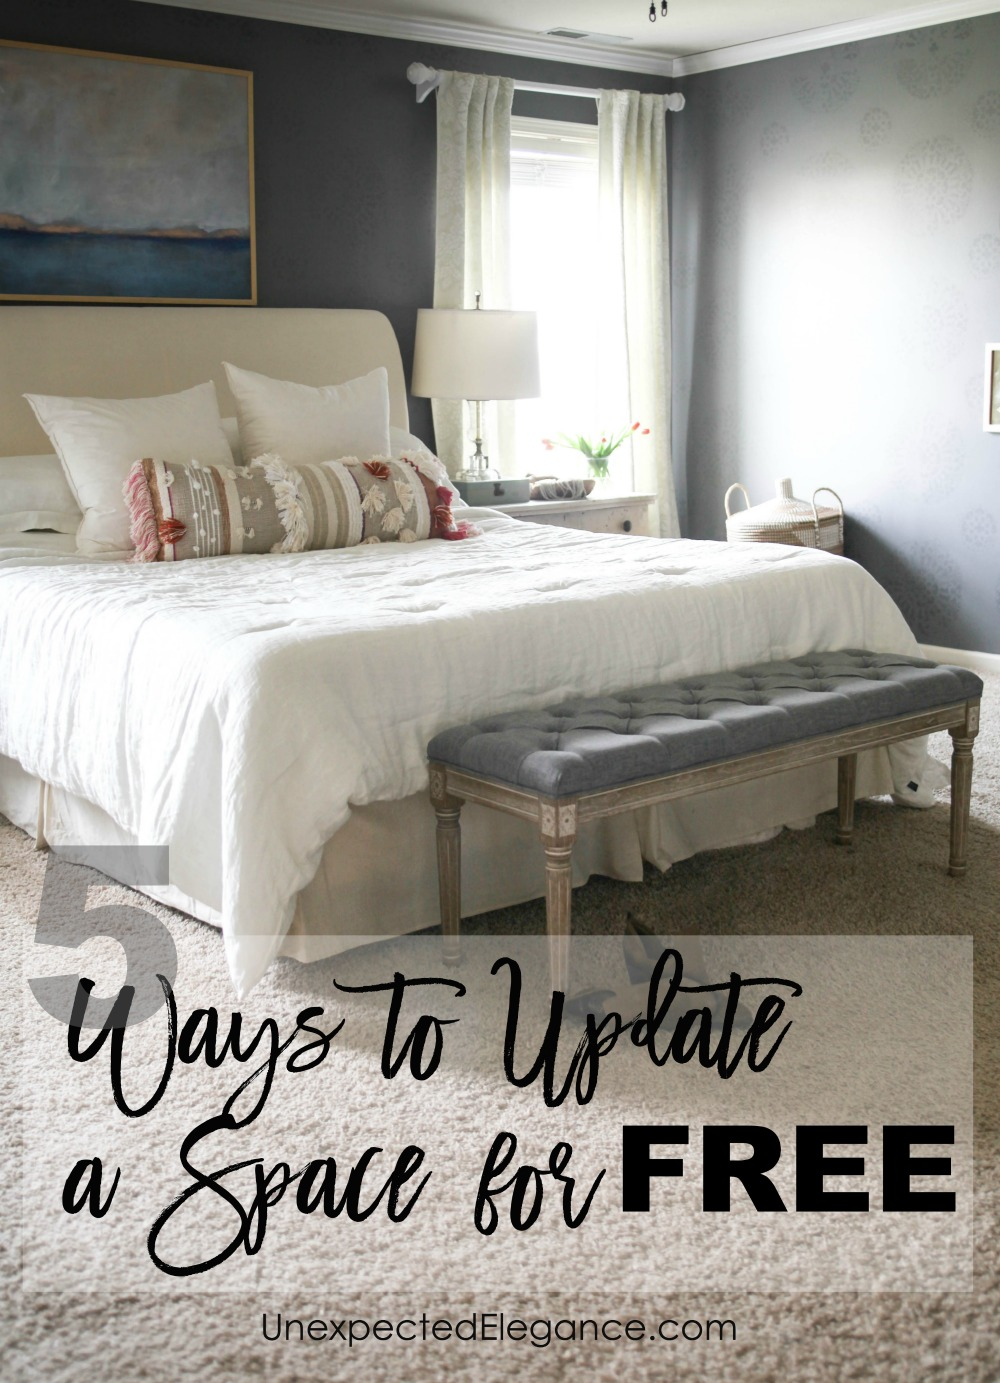 Do you have a room in your home that needs an update? Check out these TOP 5 WAYS TO UPDATE A SPACE FOR FREE! You might be amazed at some of the changes you can make without spending a dime!